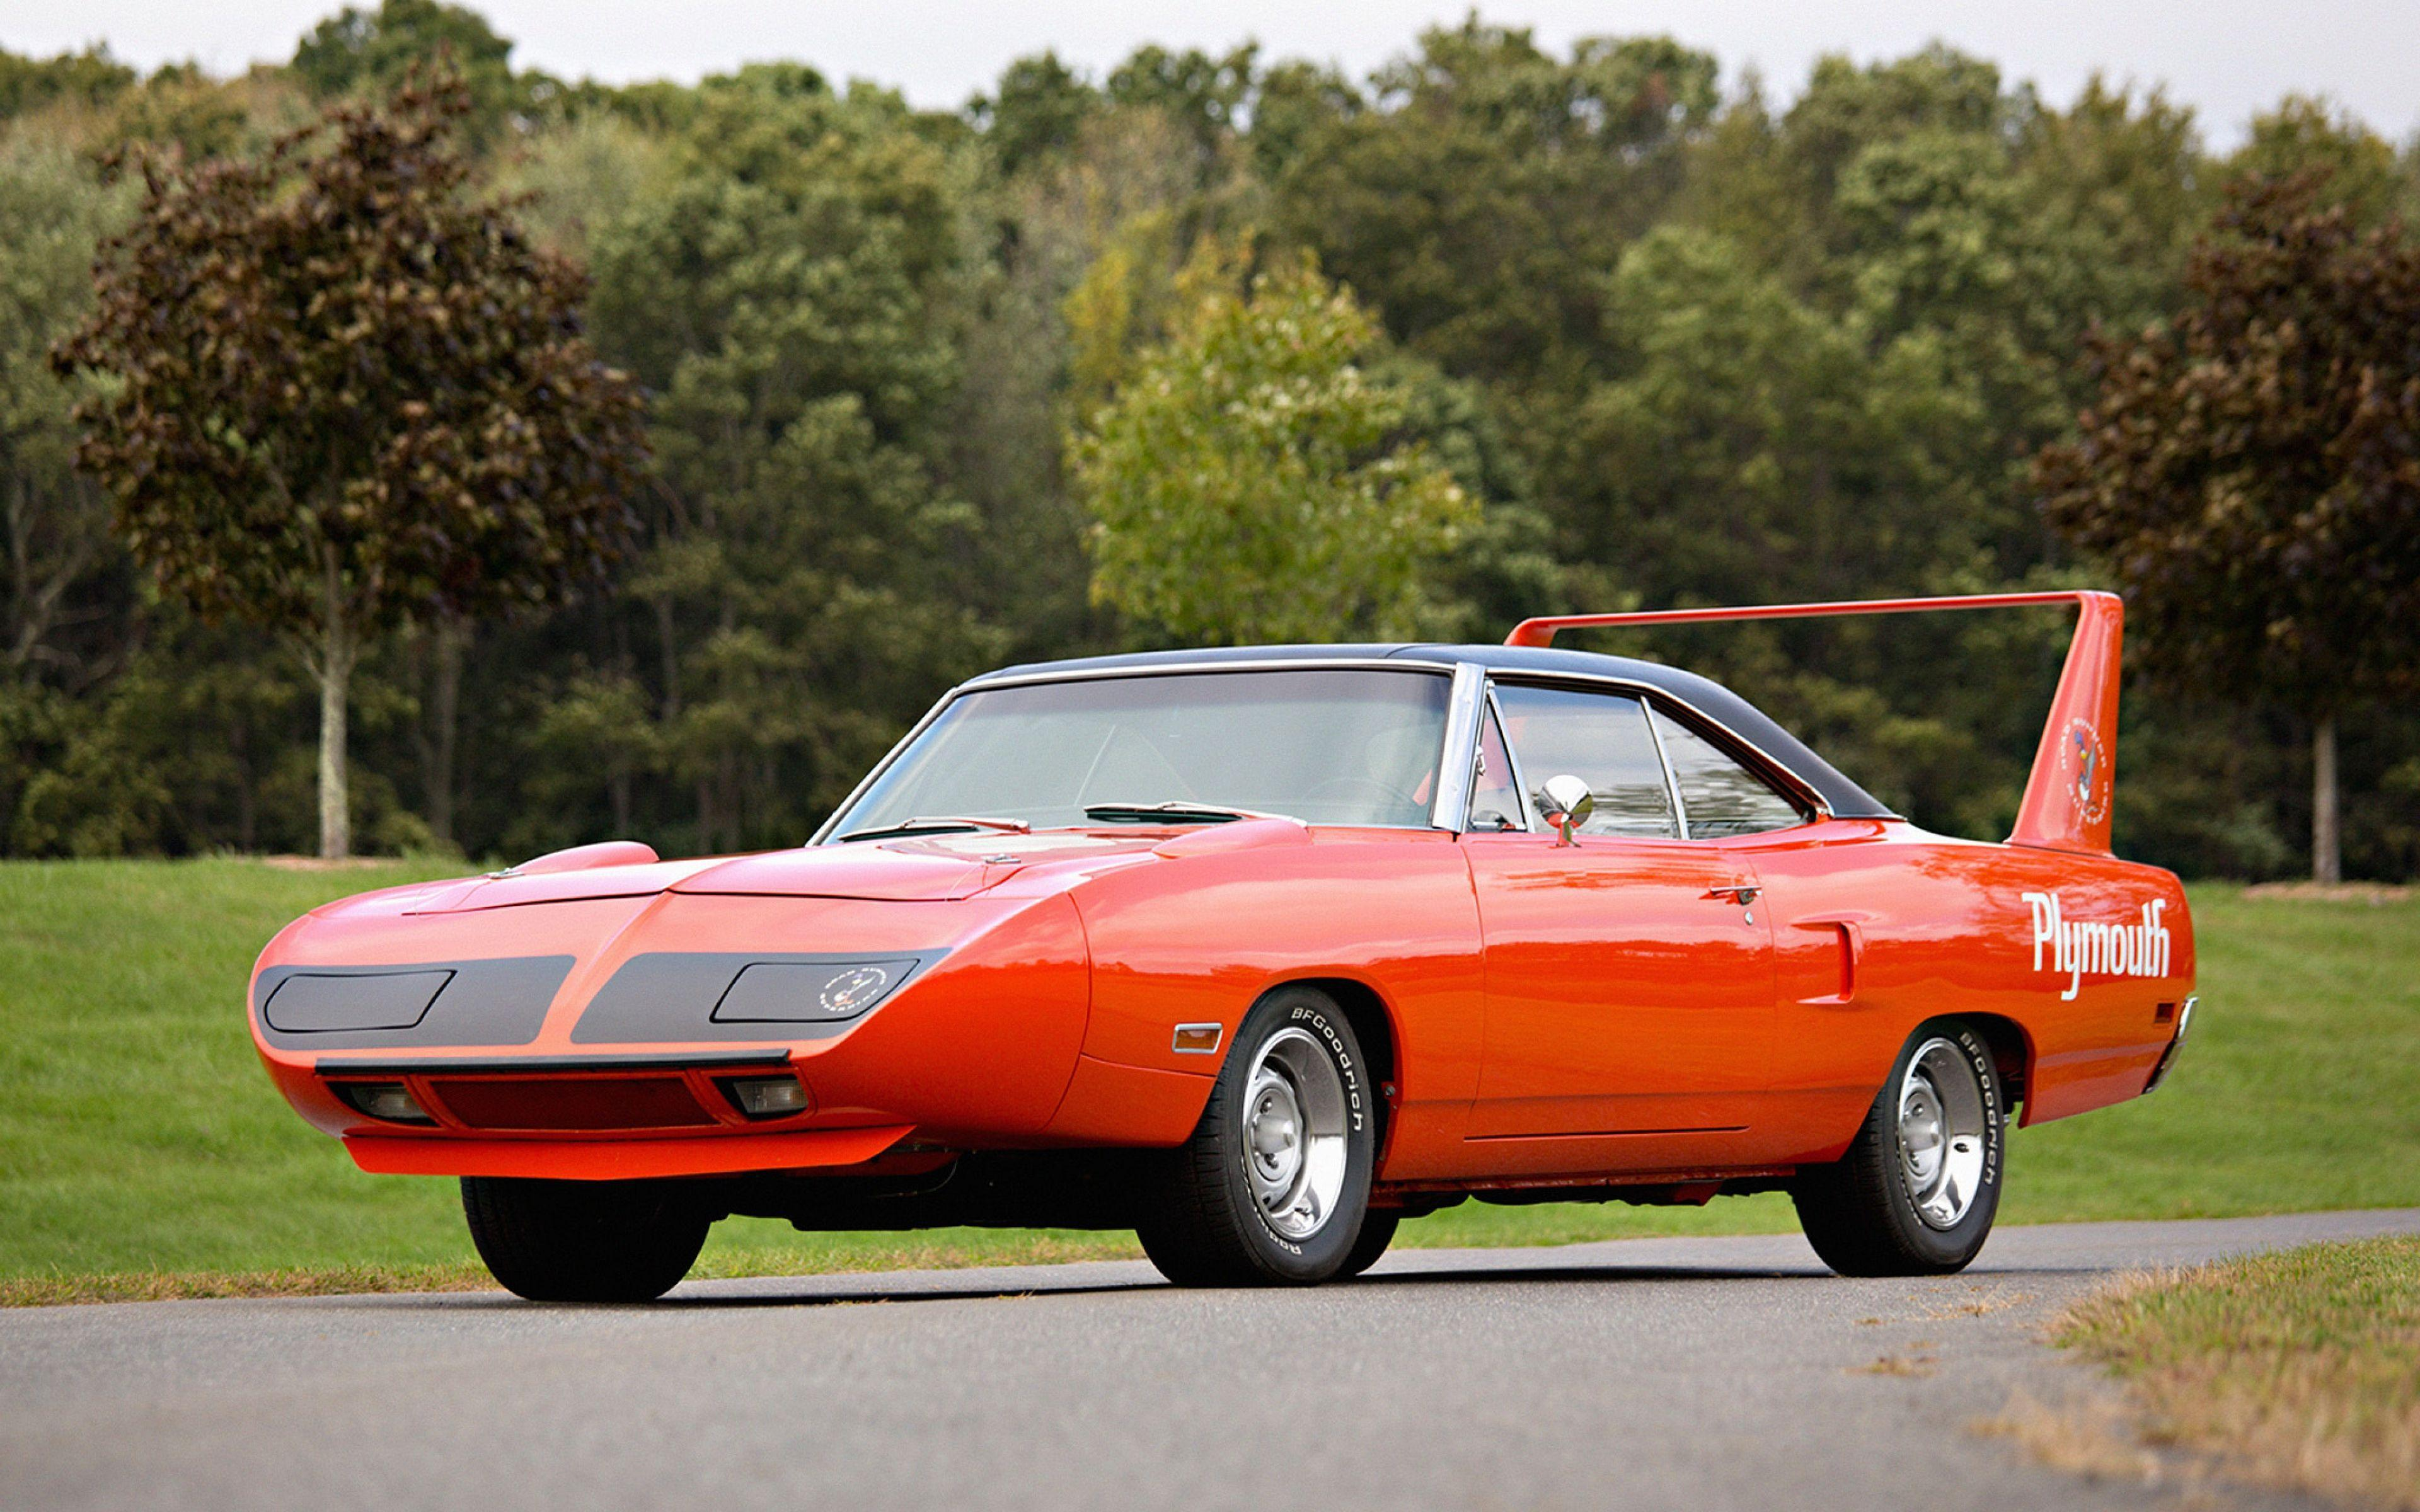 Download Wallpaper 3840x2400 Plymouth, Road runner, Superbird ...